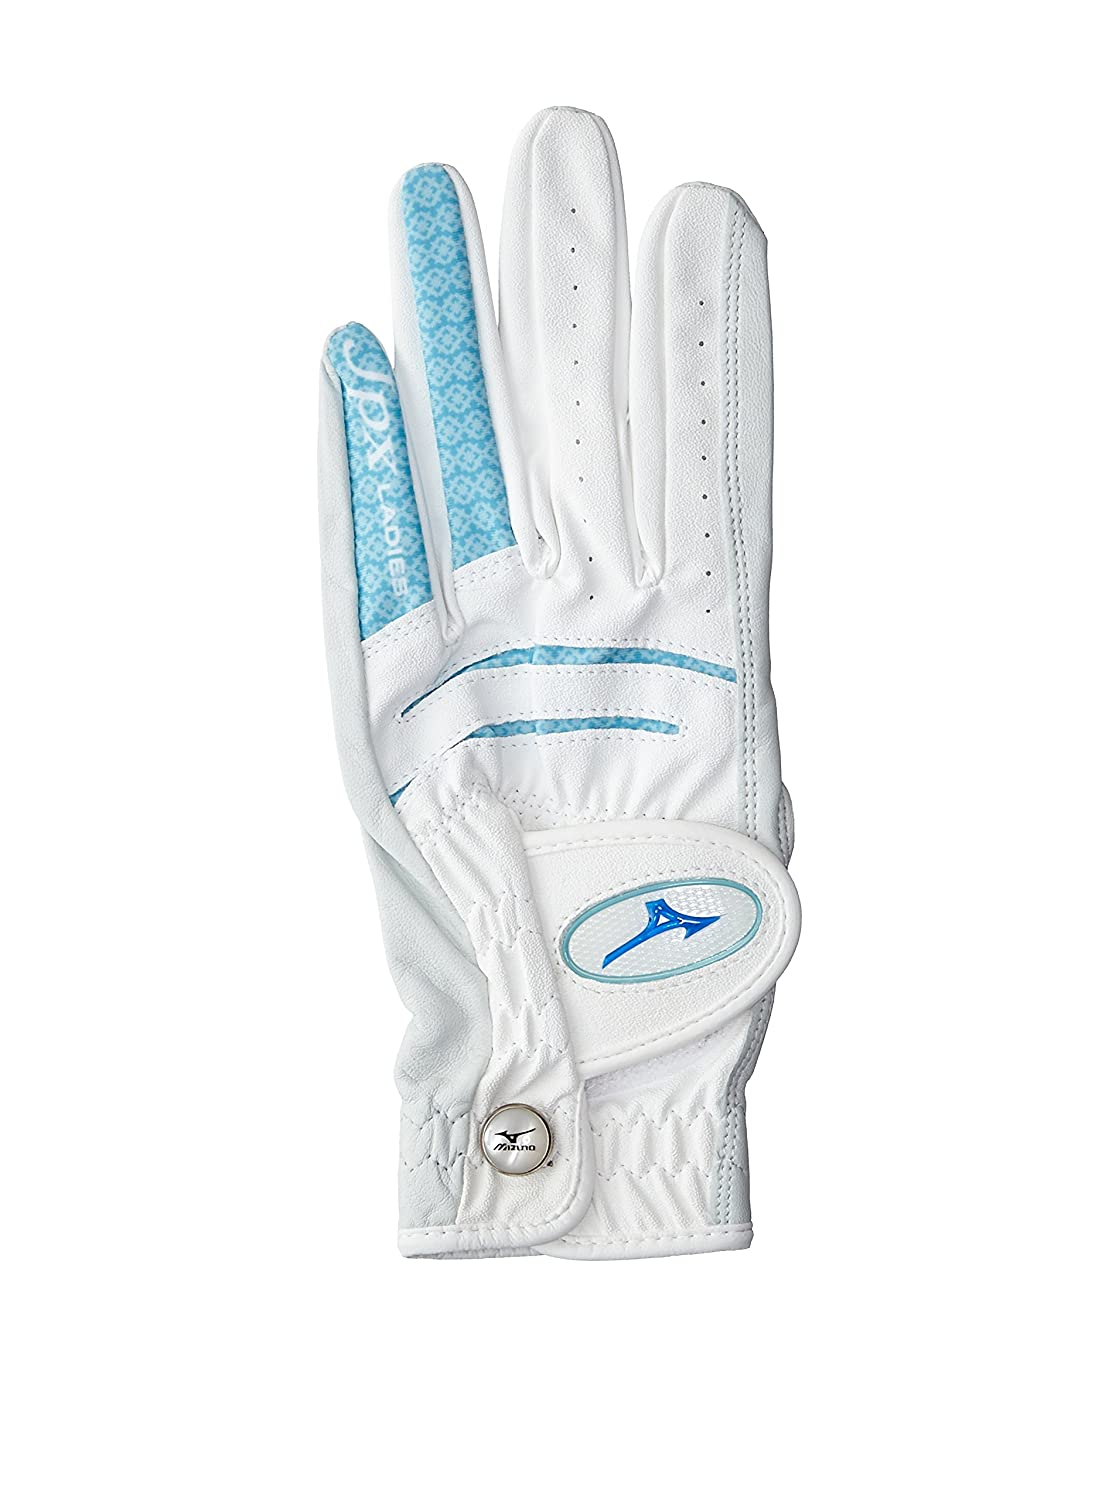 Ladies leather golf gloves uk - Ladies Mizuno Jpx Cabretta Leather Palm Golf Glove Amazon Co Uk Sports Outdoors